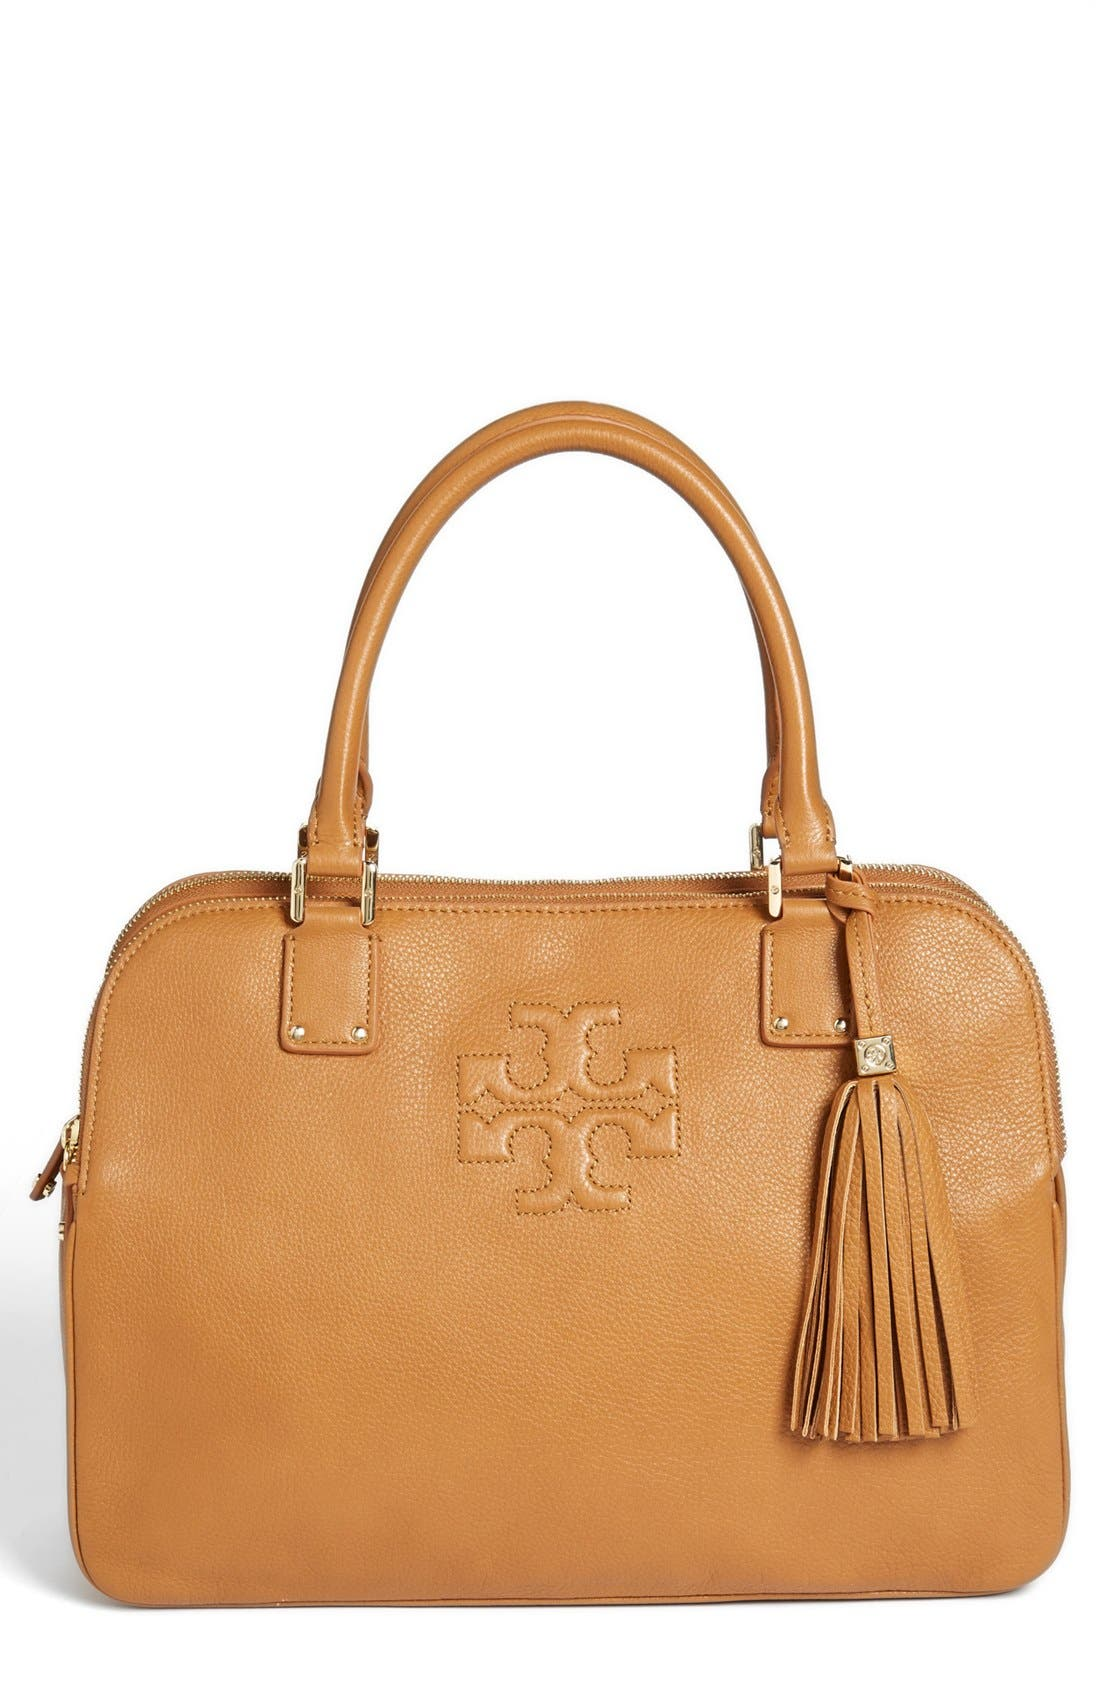 Alternate Image 1 Selected - Tory Burch 'Thea' Satchel